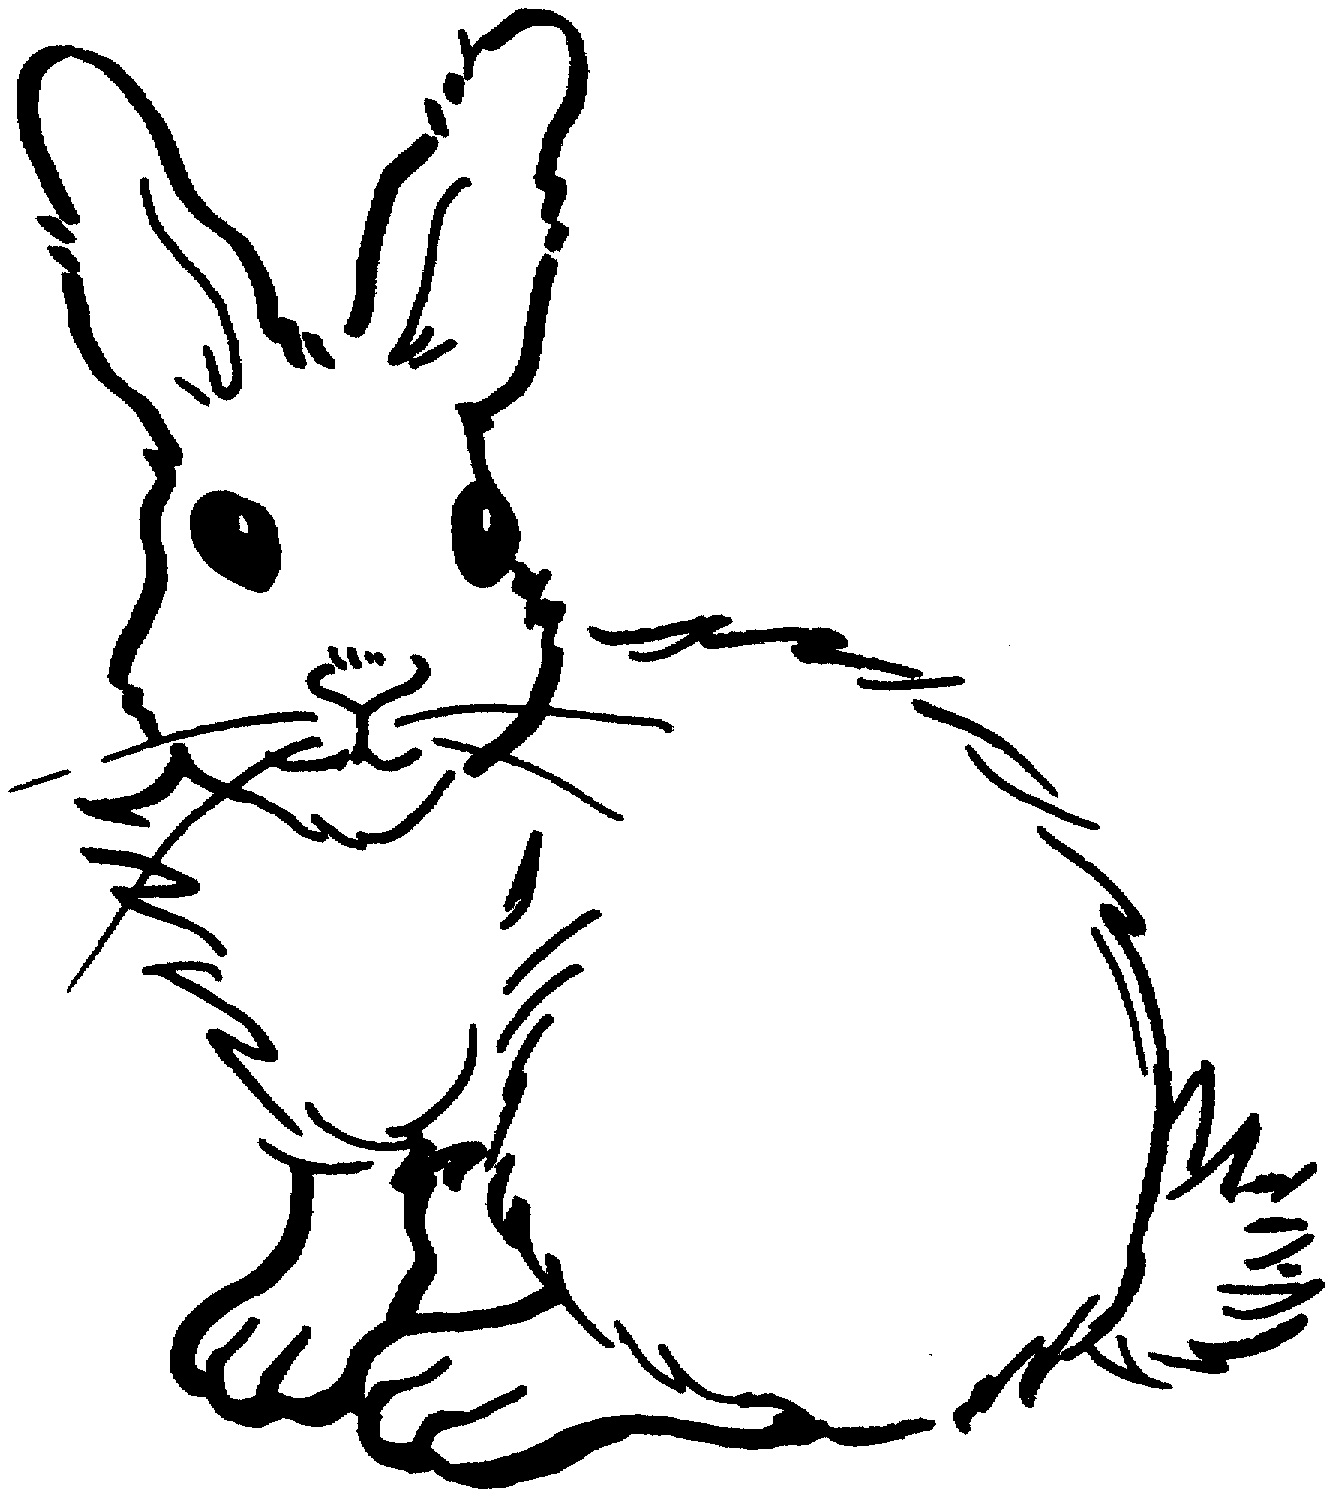 Rabbit Outline | Free download on ClipArtMag